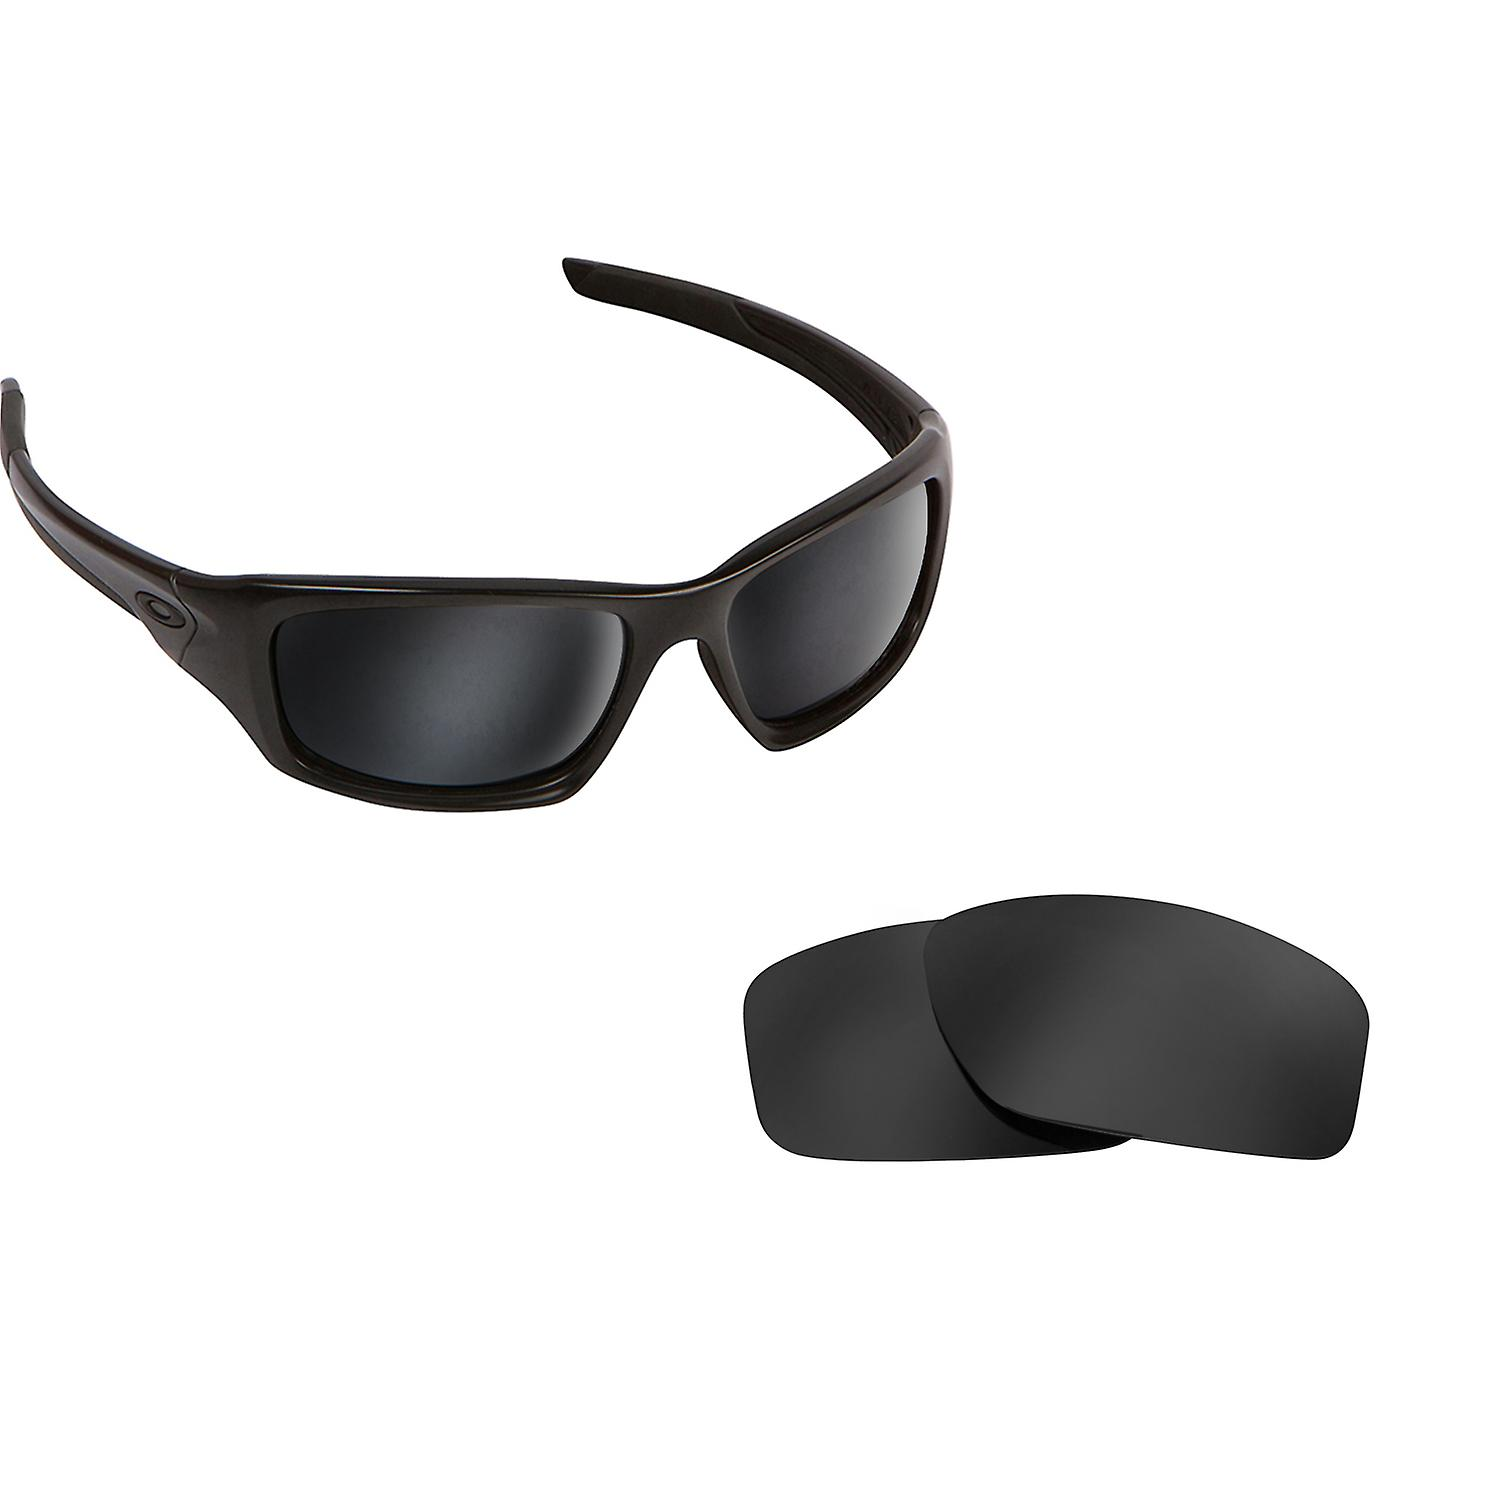 0faeaf94a0 Valve Asian Fit Replacement Lenses Polarized Black Iridium by SEEK fits  OAKLEY